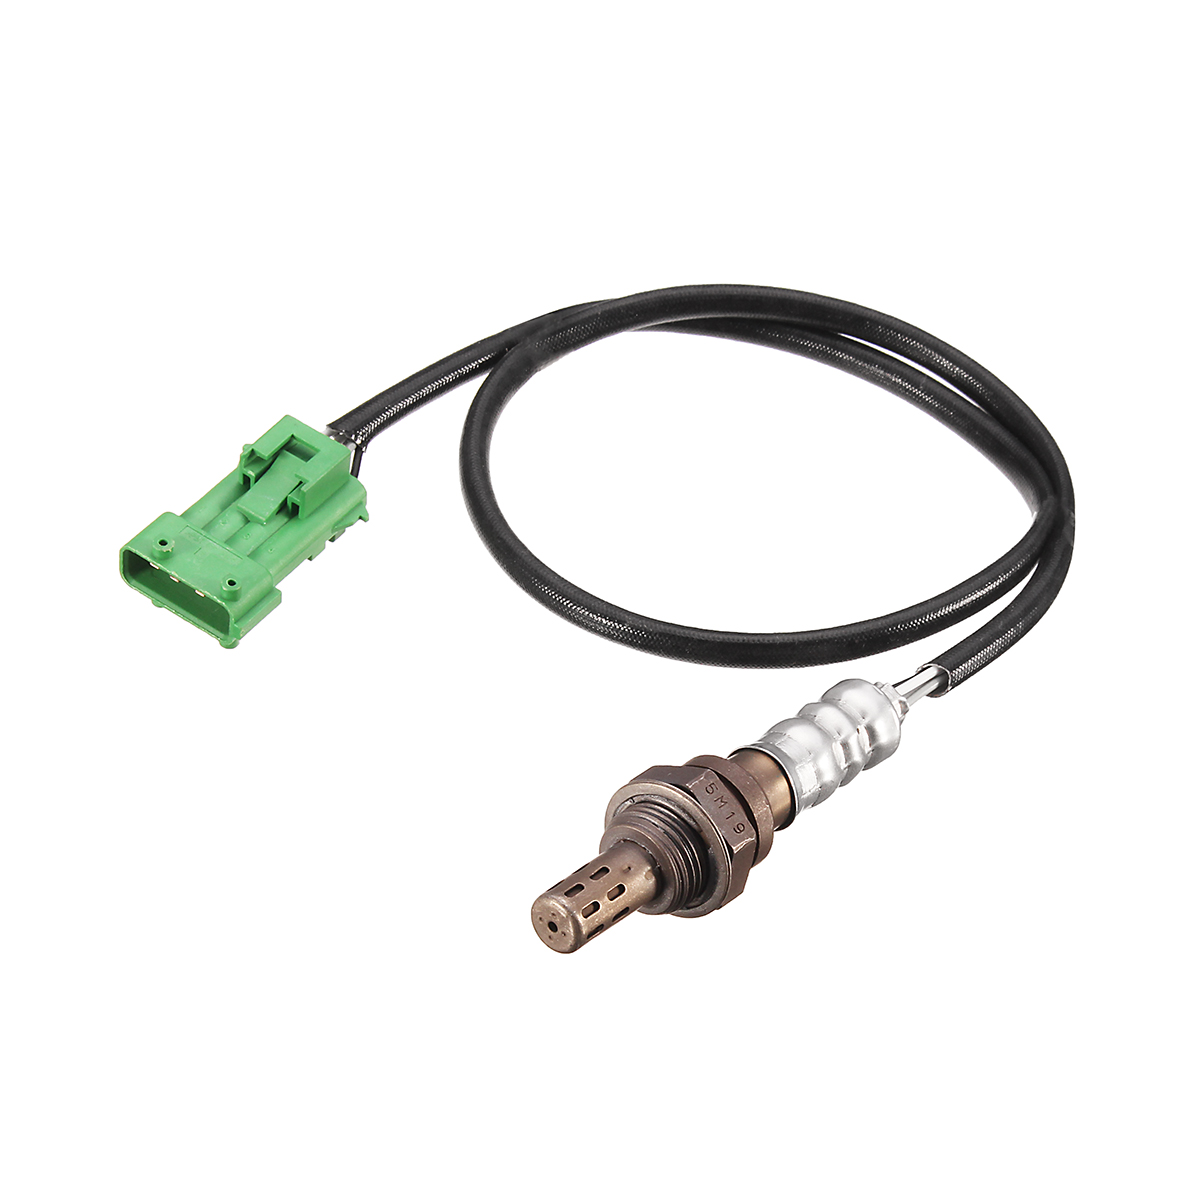 New 4 Wire O2 Oxygen Sensor For Peugeot 306 307 For